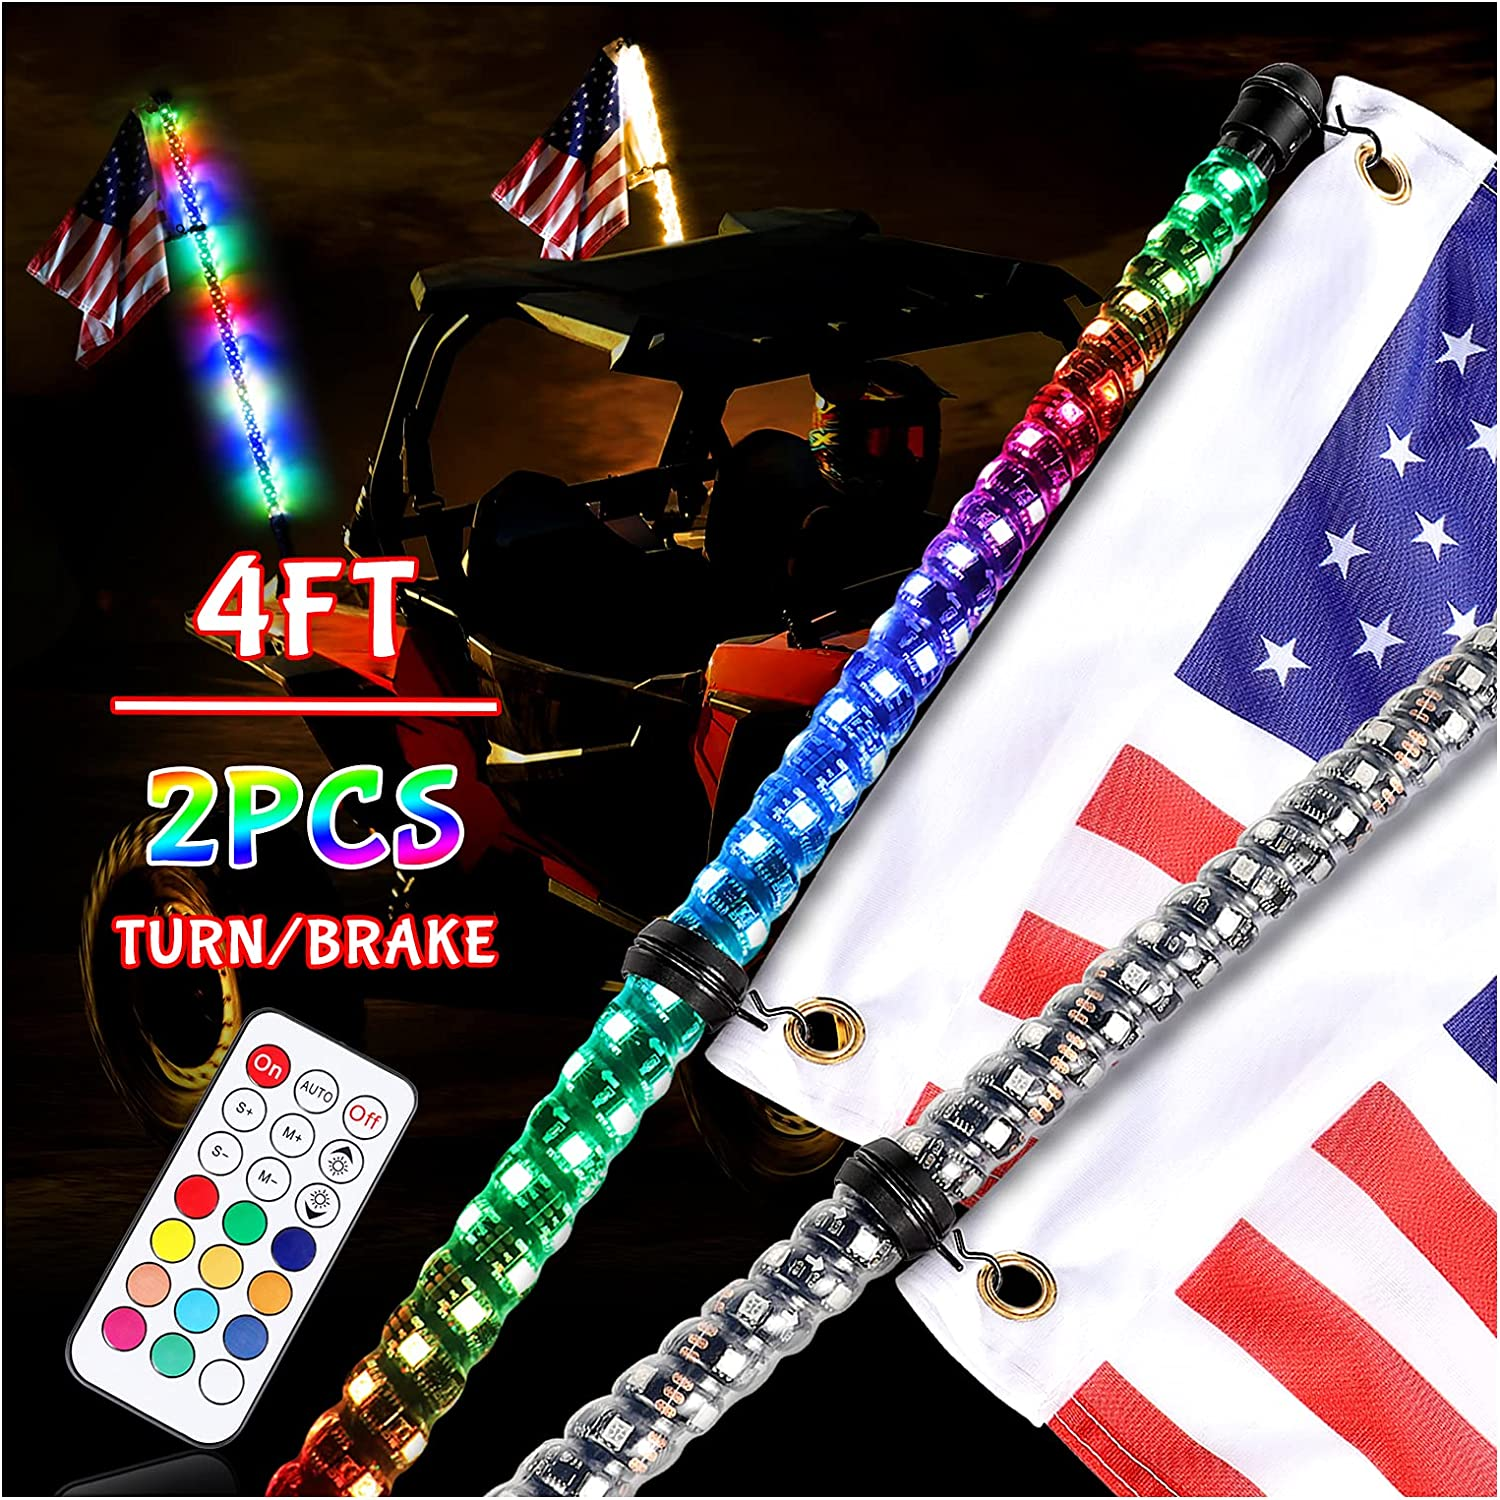 Niking Auto 2Pcs It is very popular 4ft LED Fort Worth Mall Whip Turn Lights Signal Rever Brake w